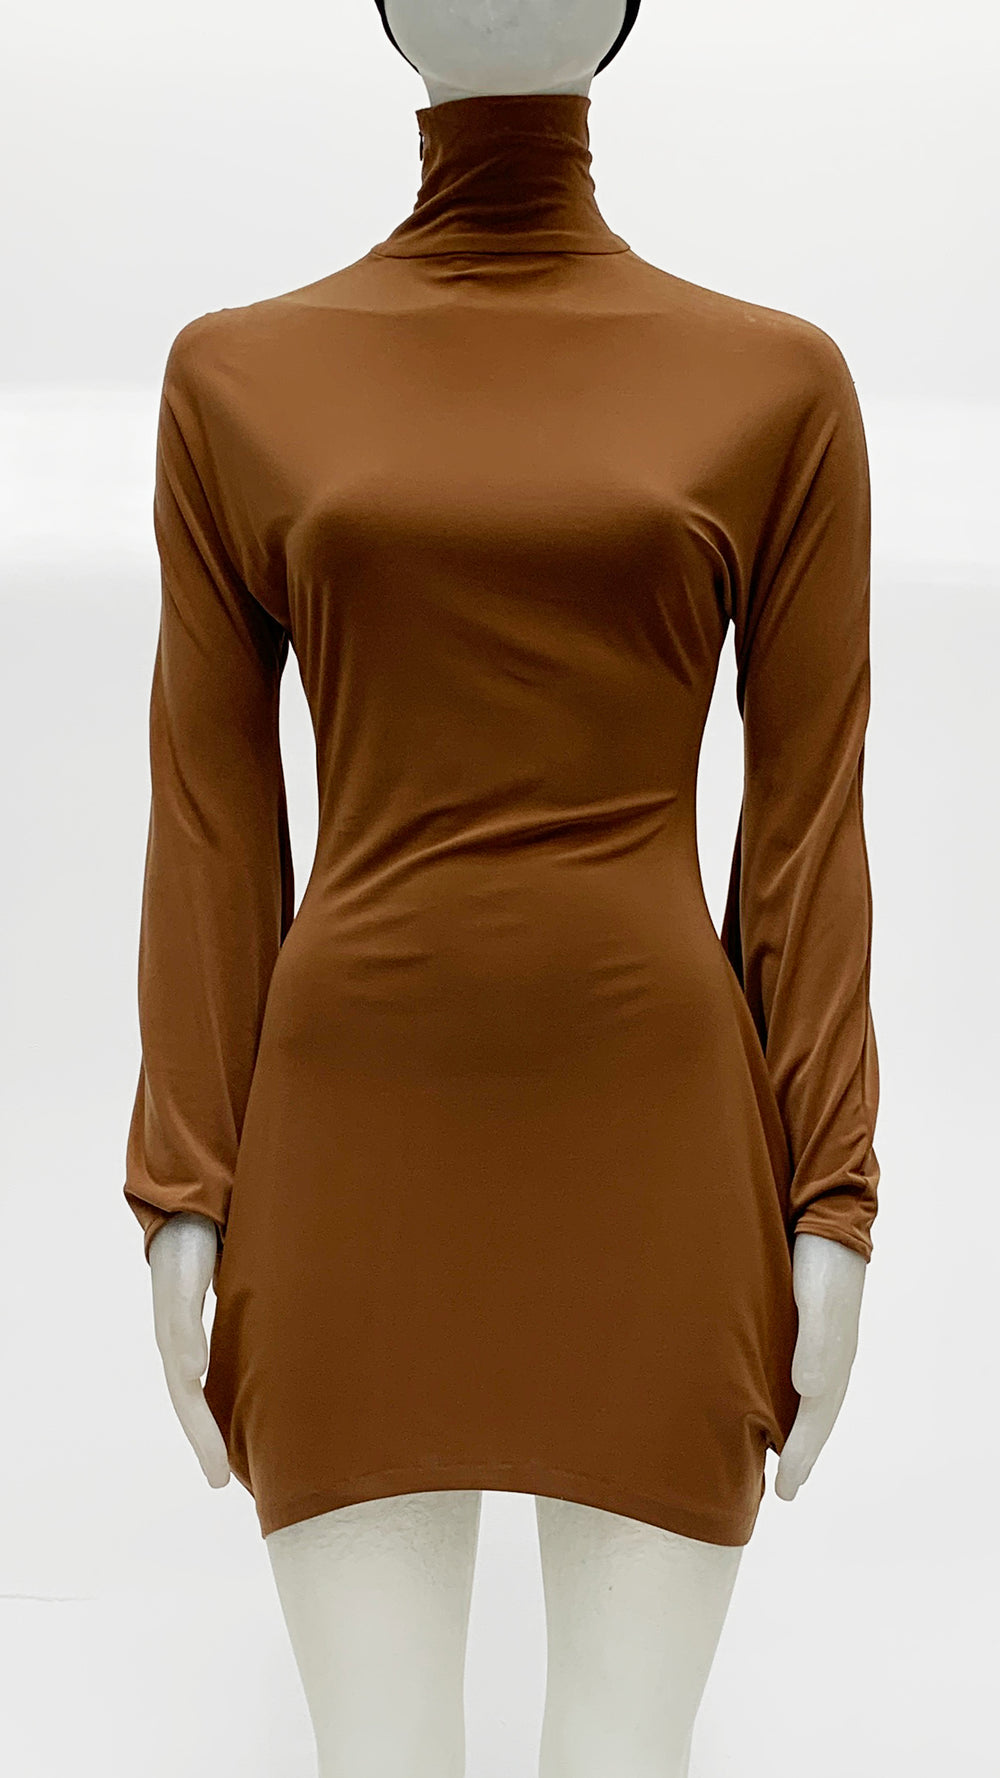 TURTLENECK MODERN SCULPTURE DRESS - 1